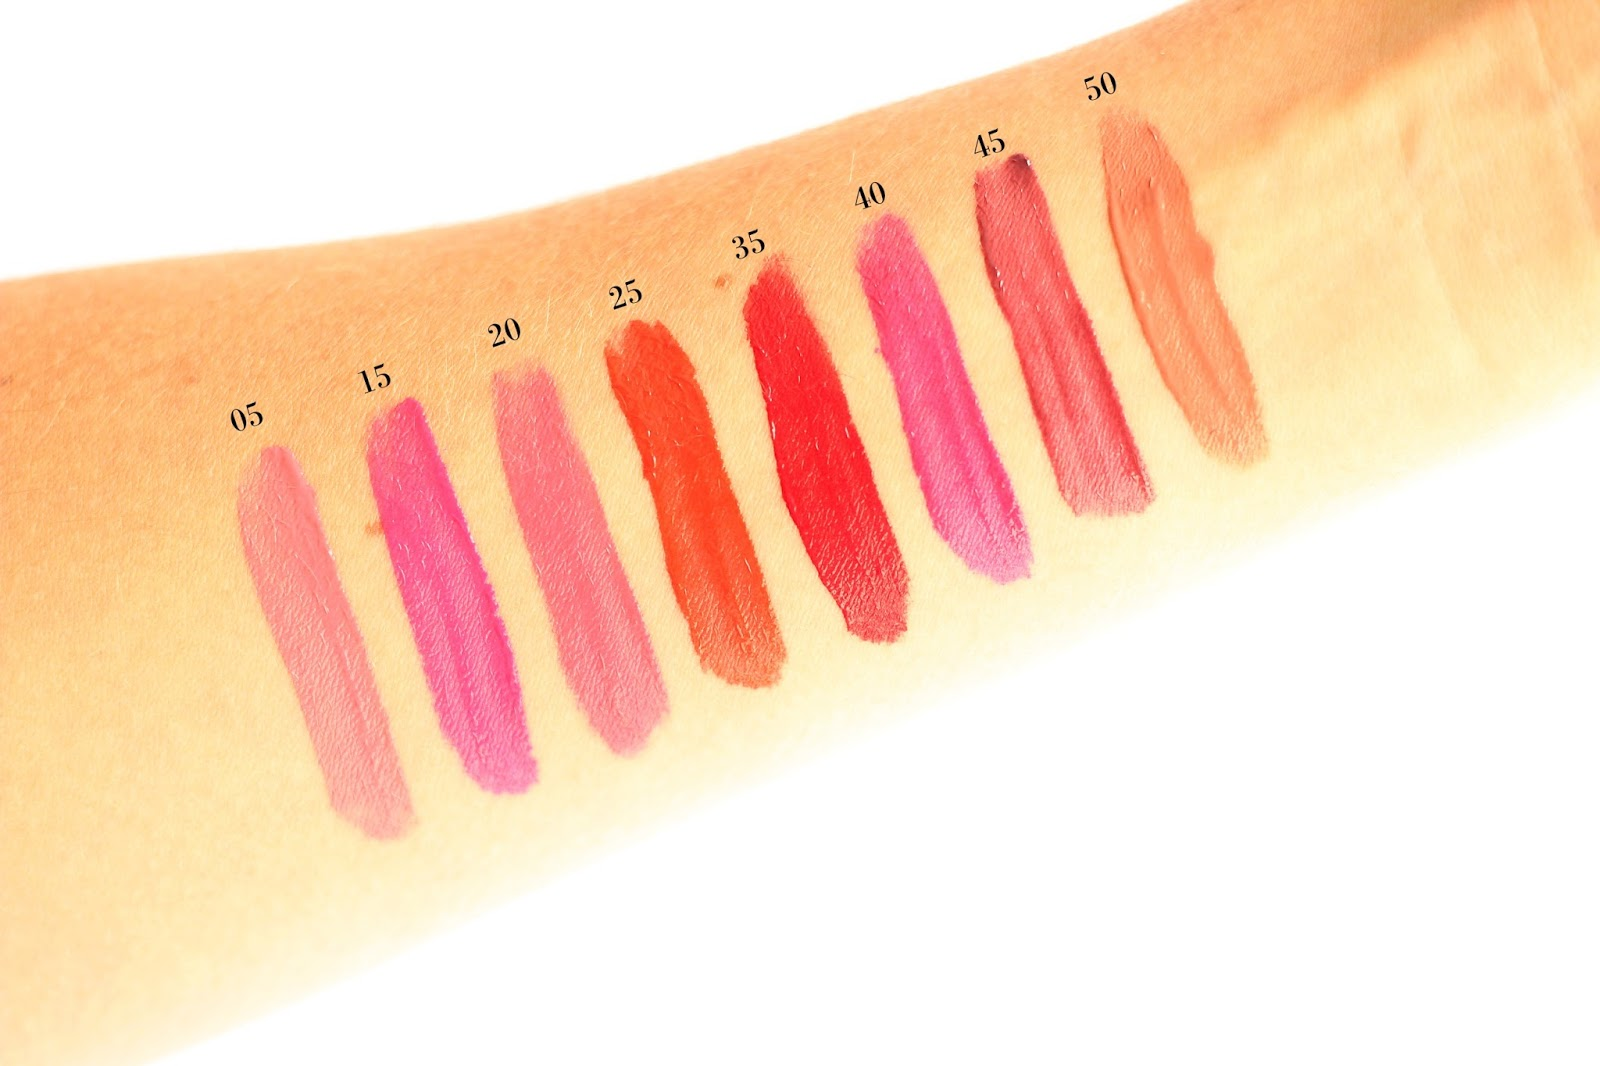 Swatches of the NEW Maybelline Color Sensational Vivid Matte Liquid Lipsticks Collection